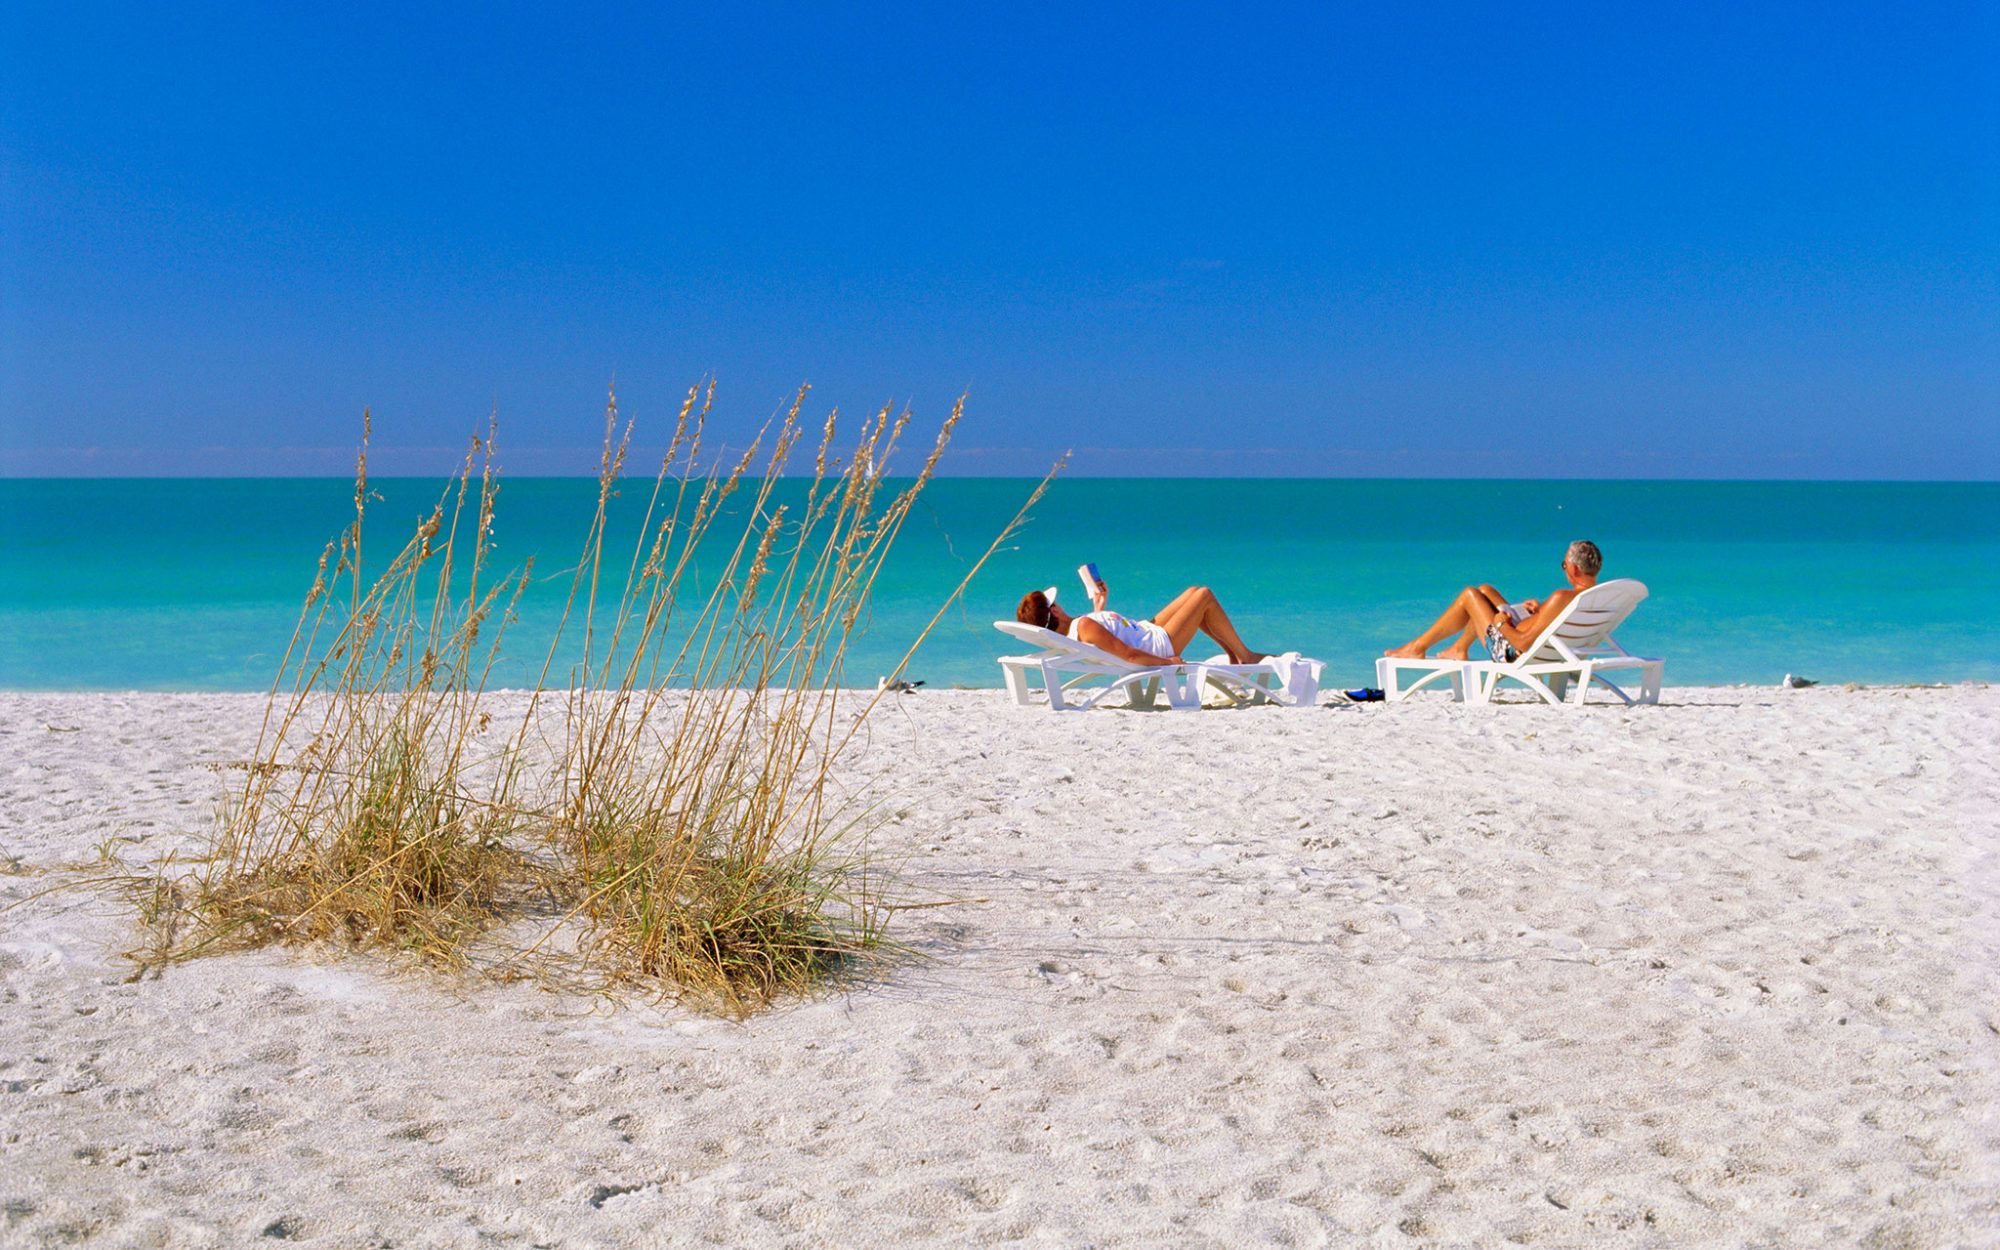 Best Beach Weekend Getaways: Anna Maria Island's Sandy Seclusion